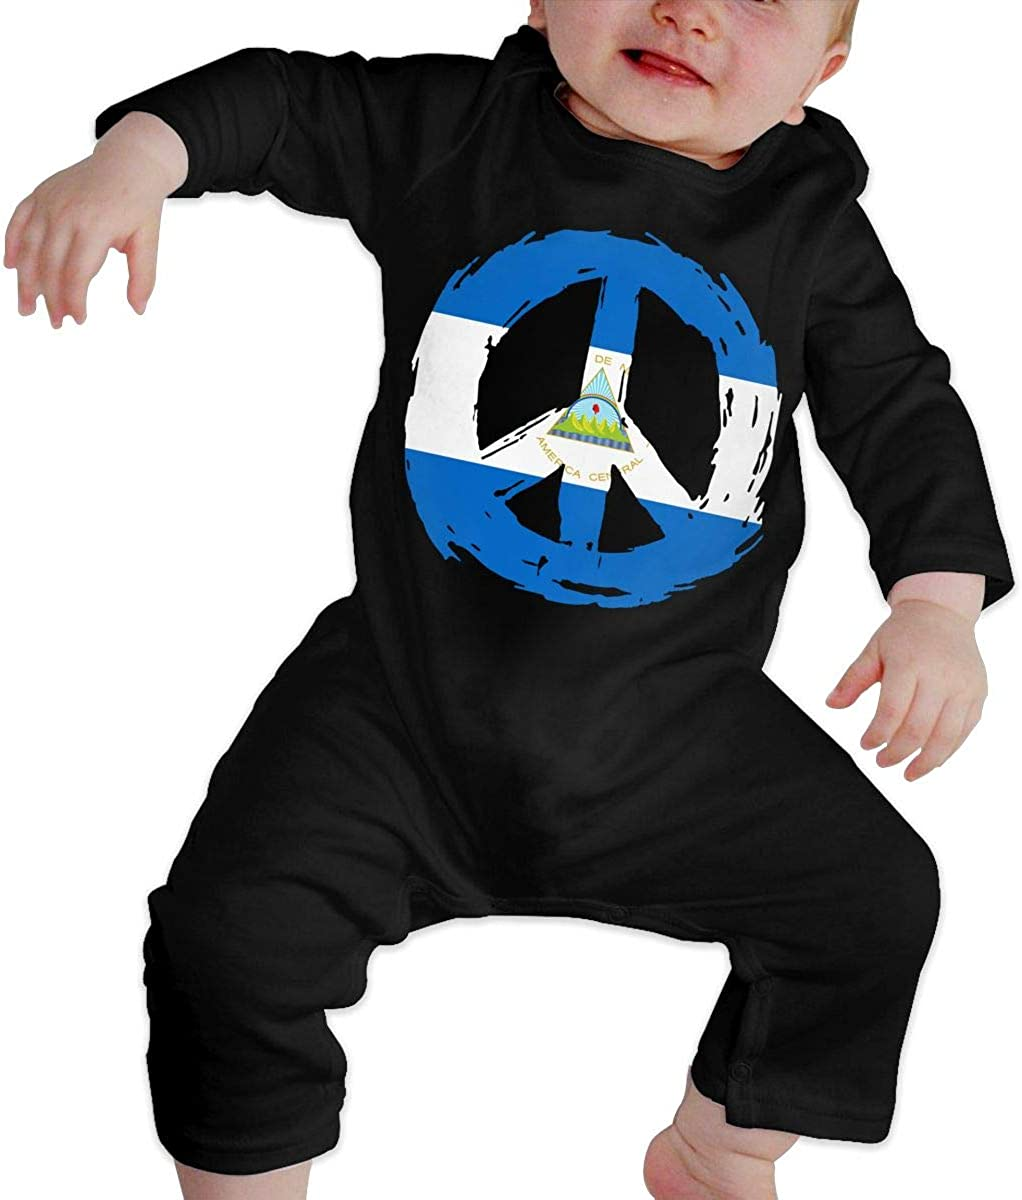 BKNGDG8Q Toddler Baby Boy Romper Jumpsuit Nicaragua Flag Peace Organic One-Piece Kid Pajamas Clothes